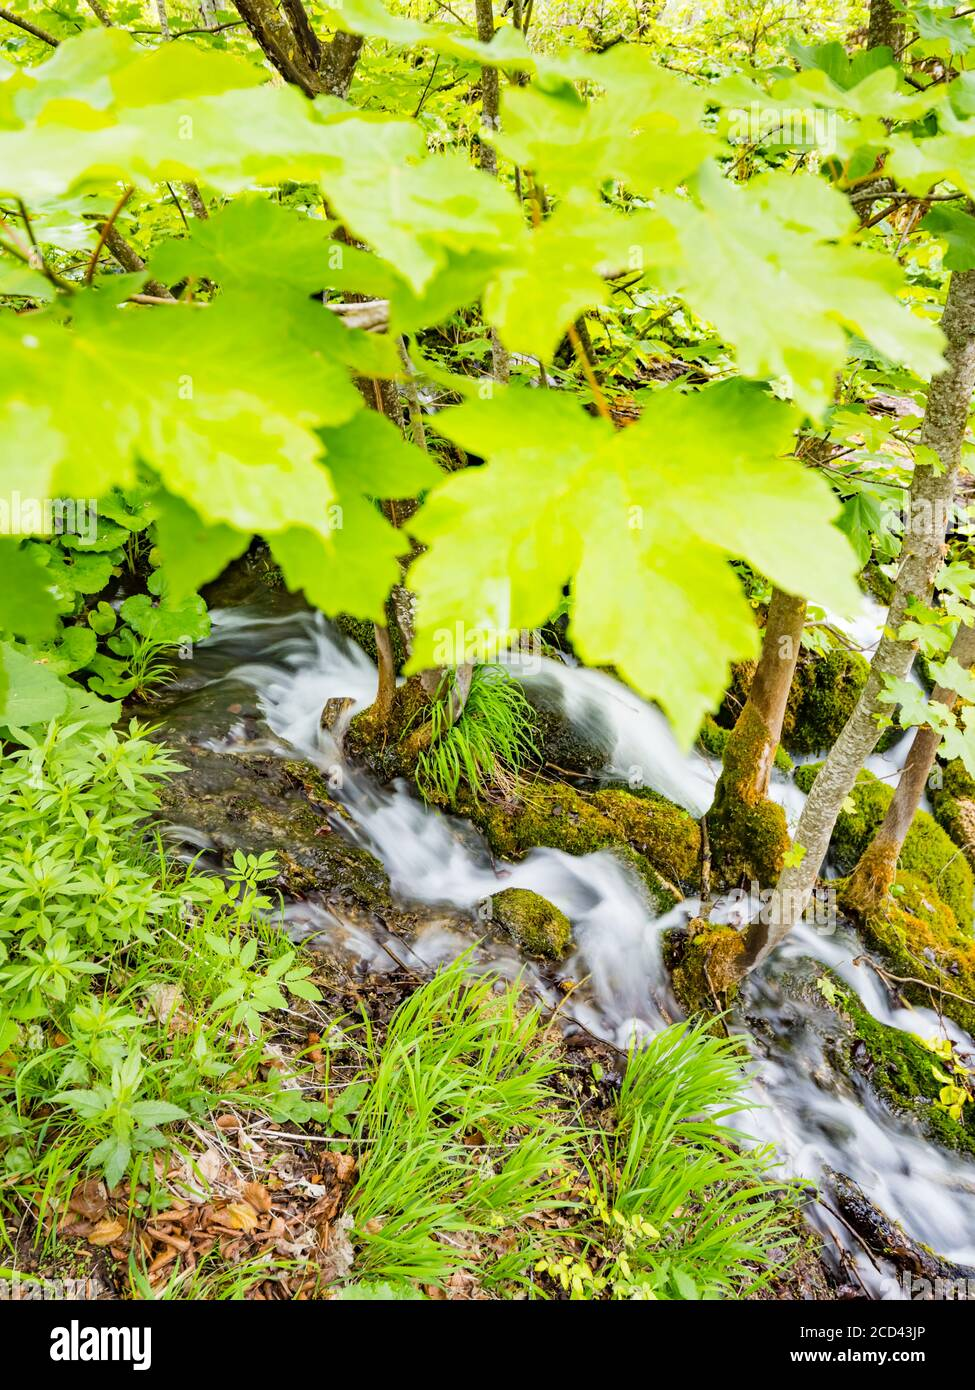 National park Plitvice lakes in Croatia Europe water flowing waterflow small river meandering under canopy of leaves trees Stock Photo